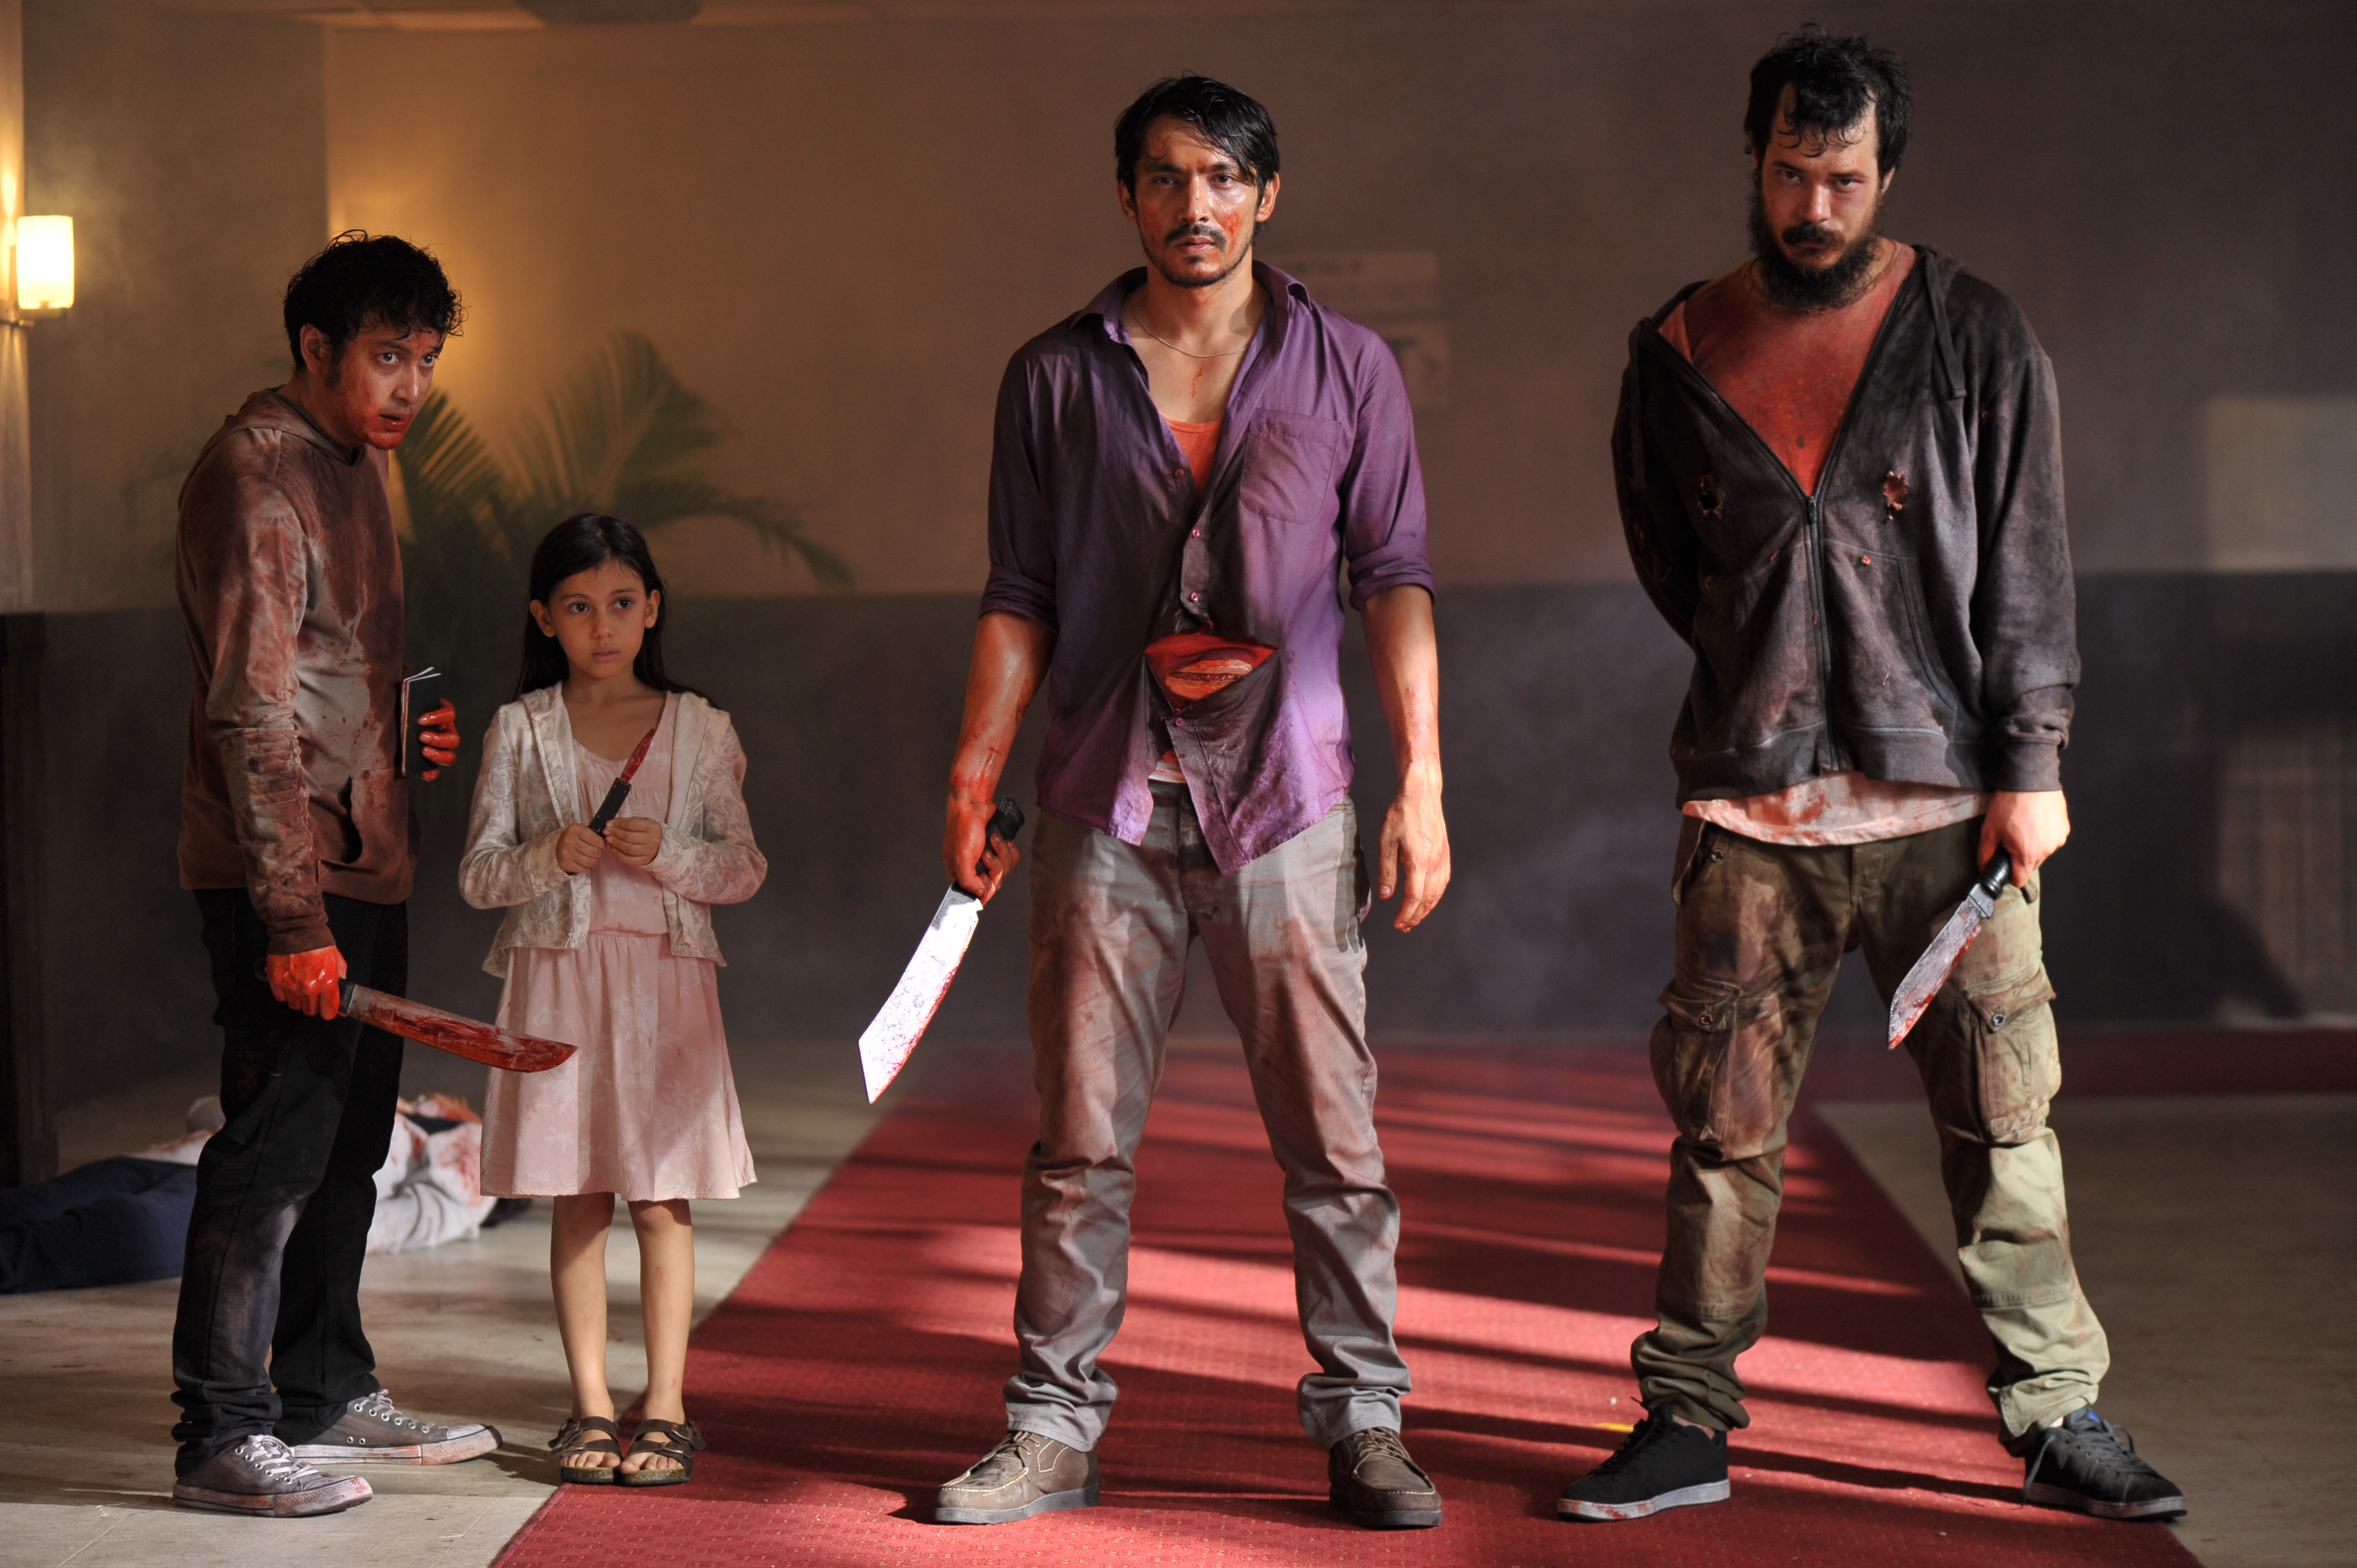 Netflix's The Night Comes For Us is the wildest martial arts film of the year